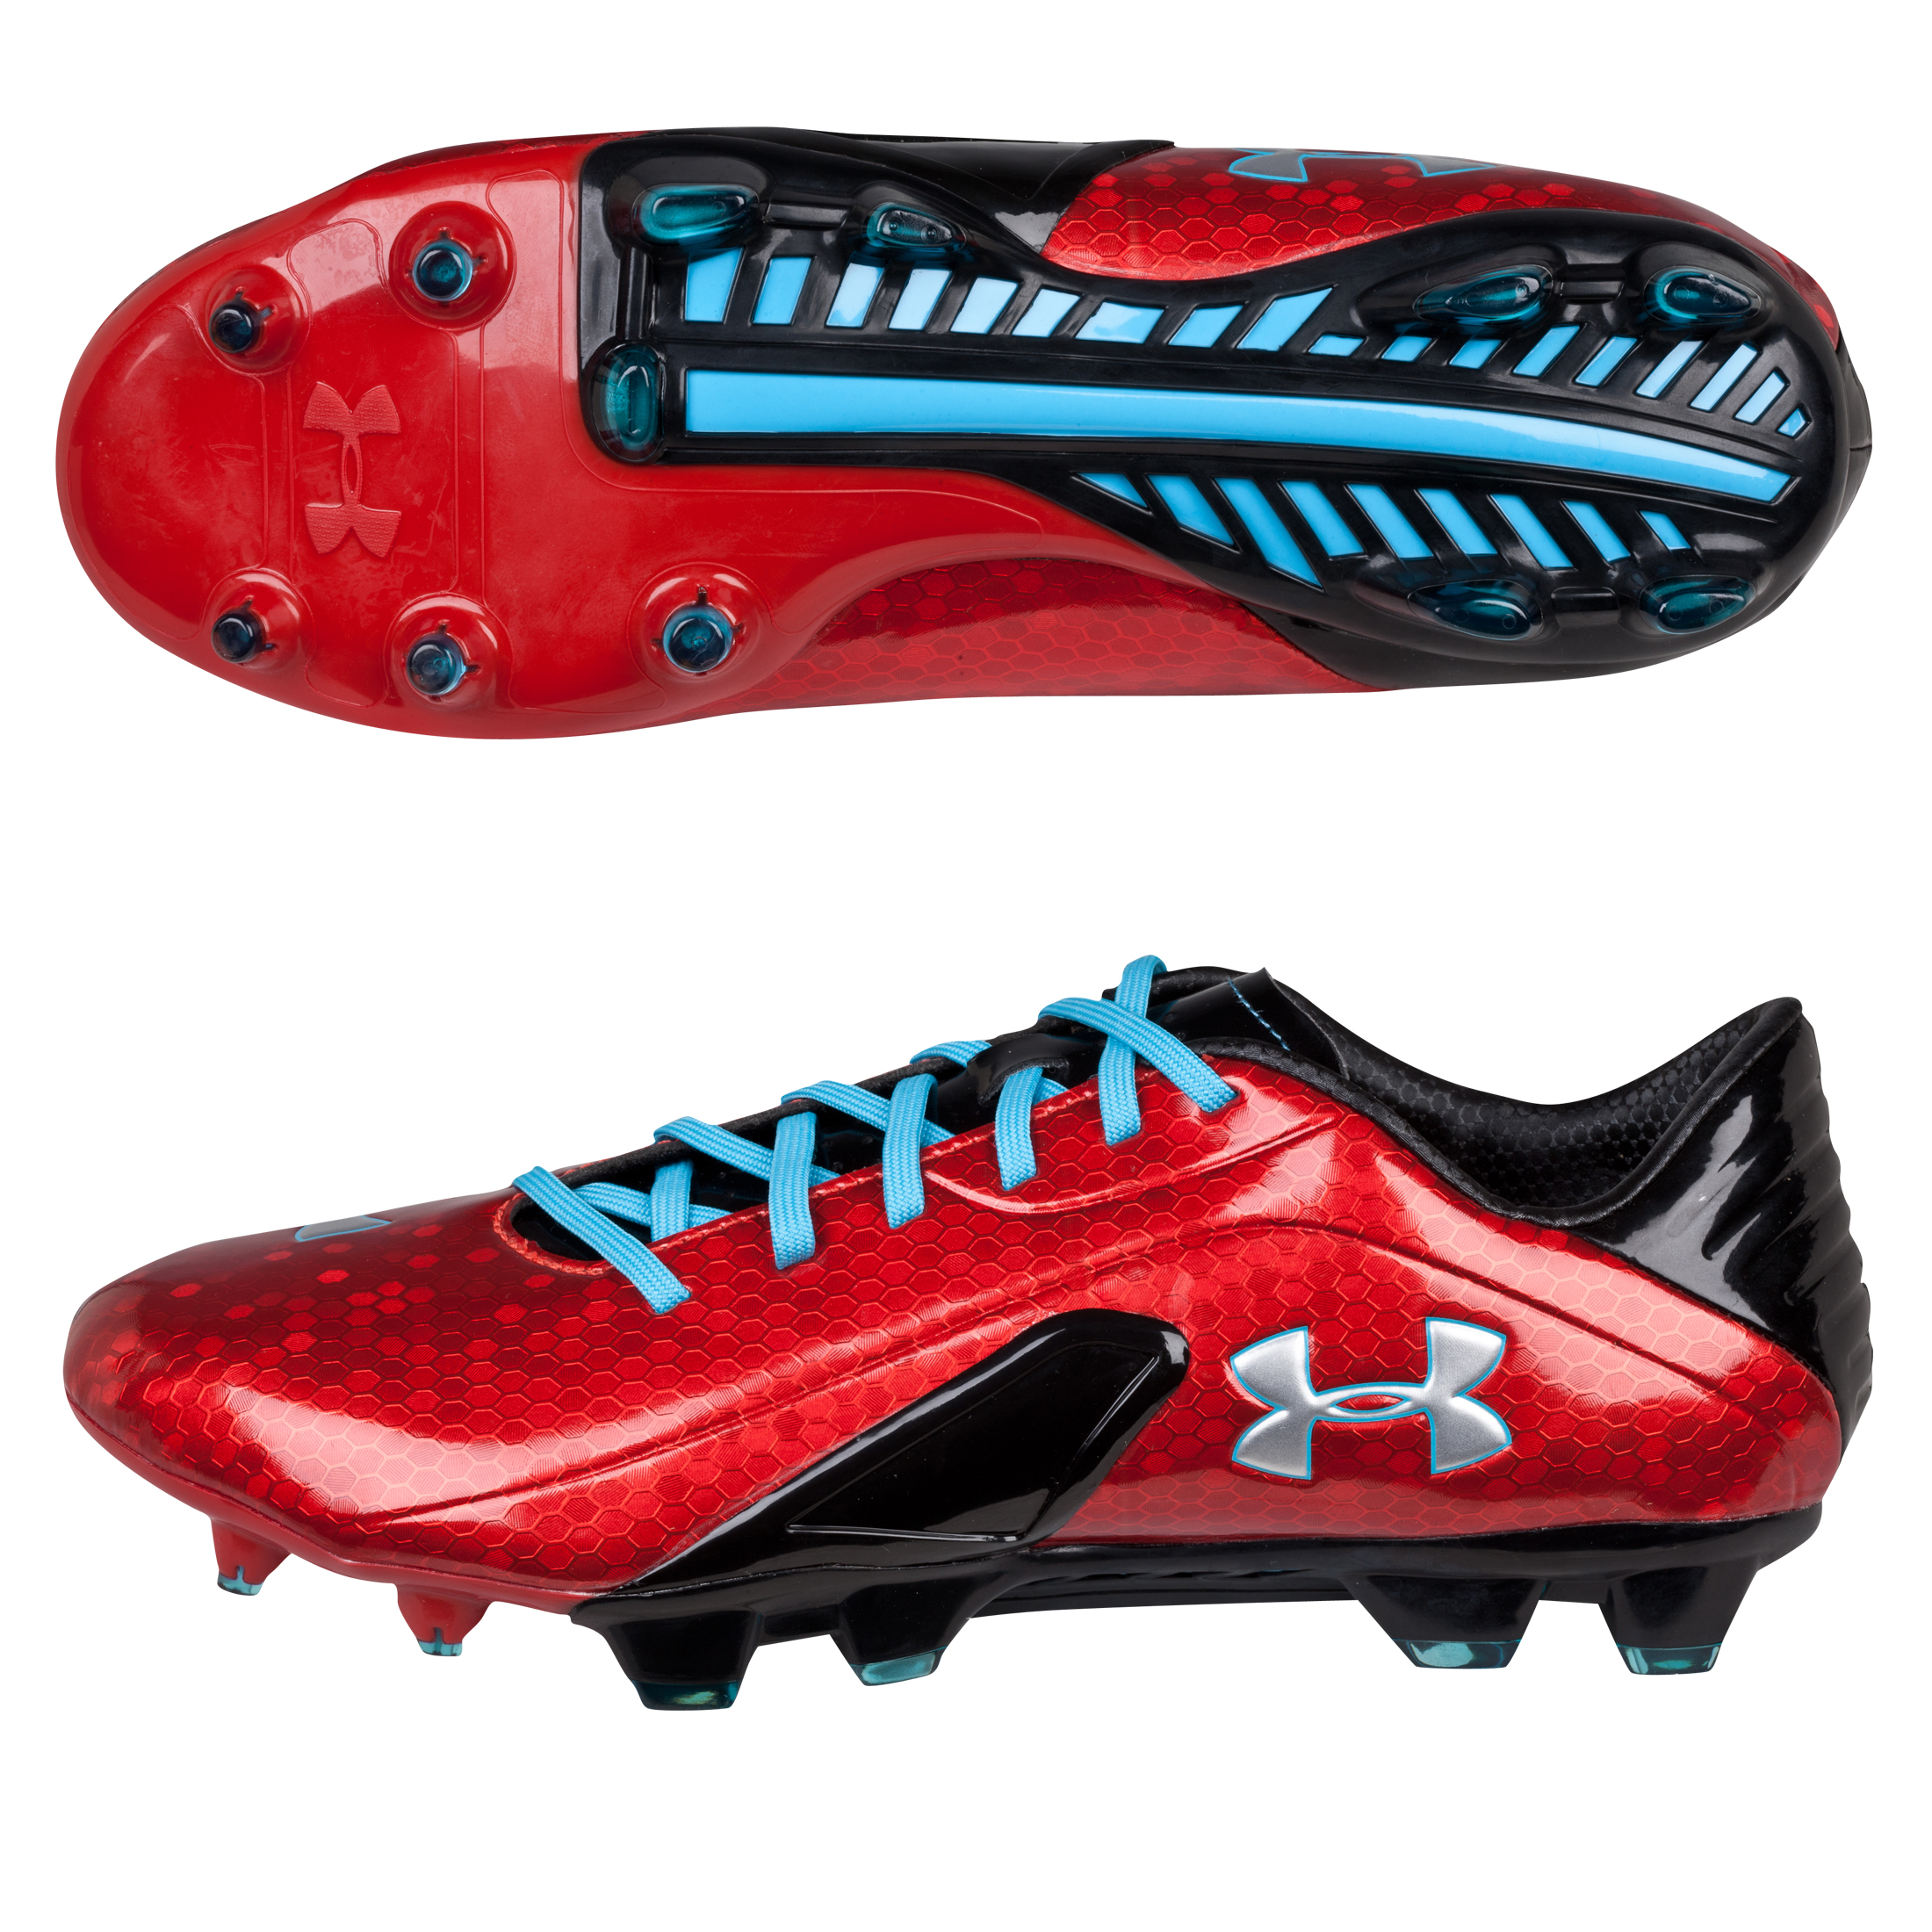 Under Armour Spine Blur III Firm Ground-Red/Blk/Blue Red